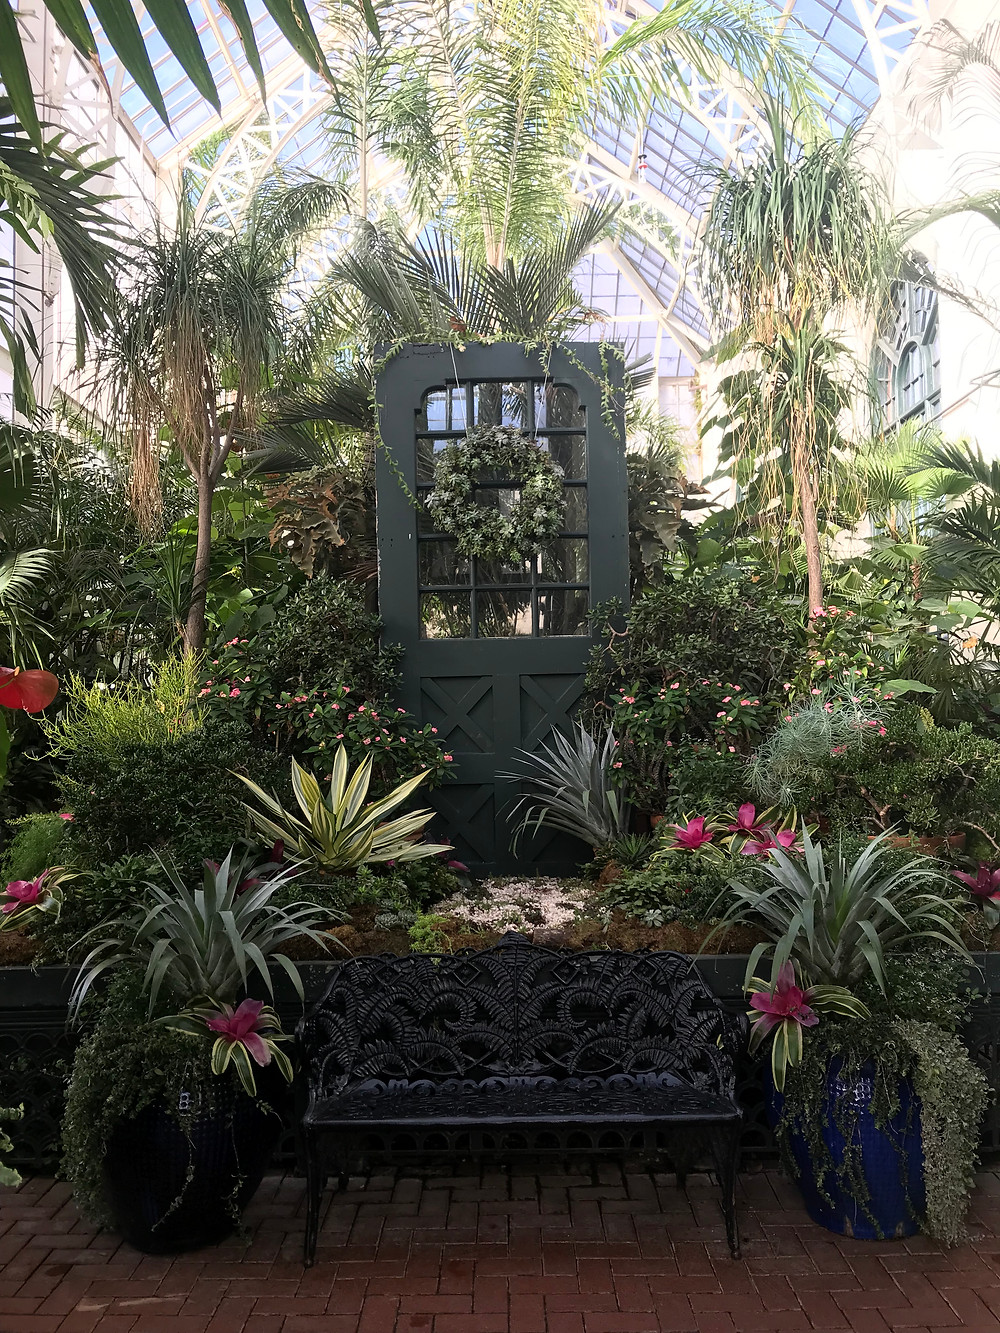 Exotic Plants inside the Conservancy